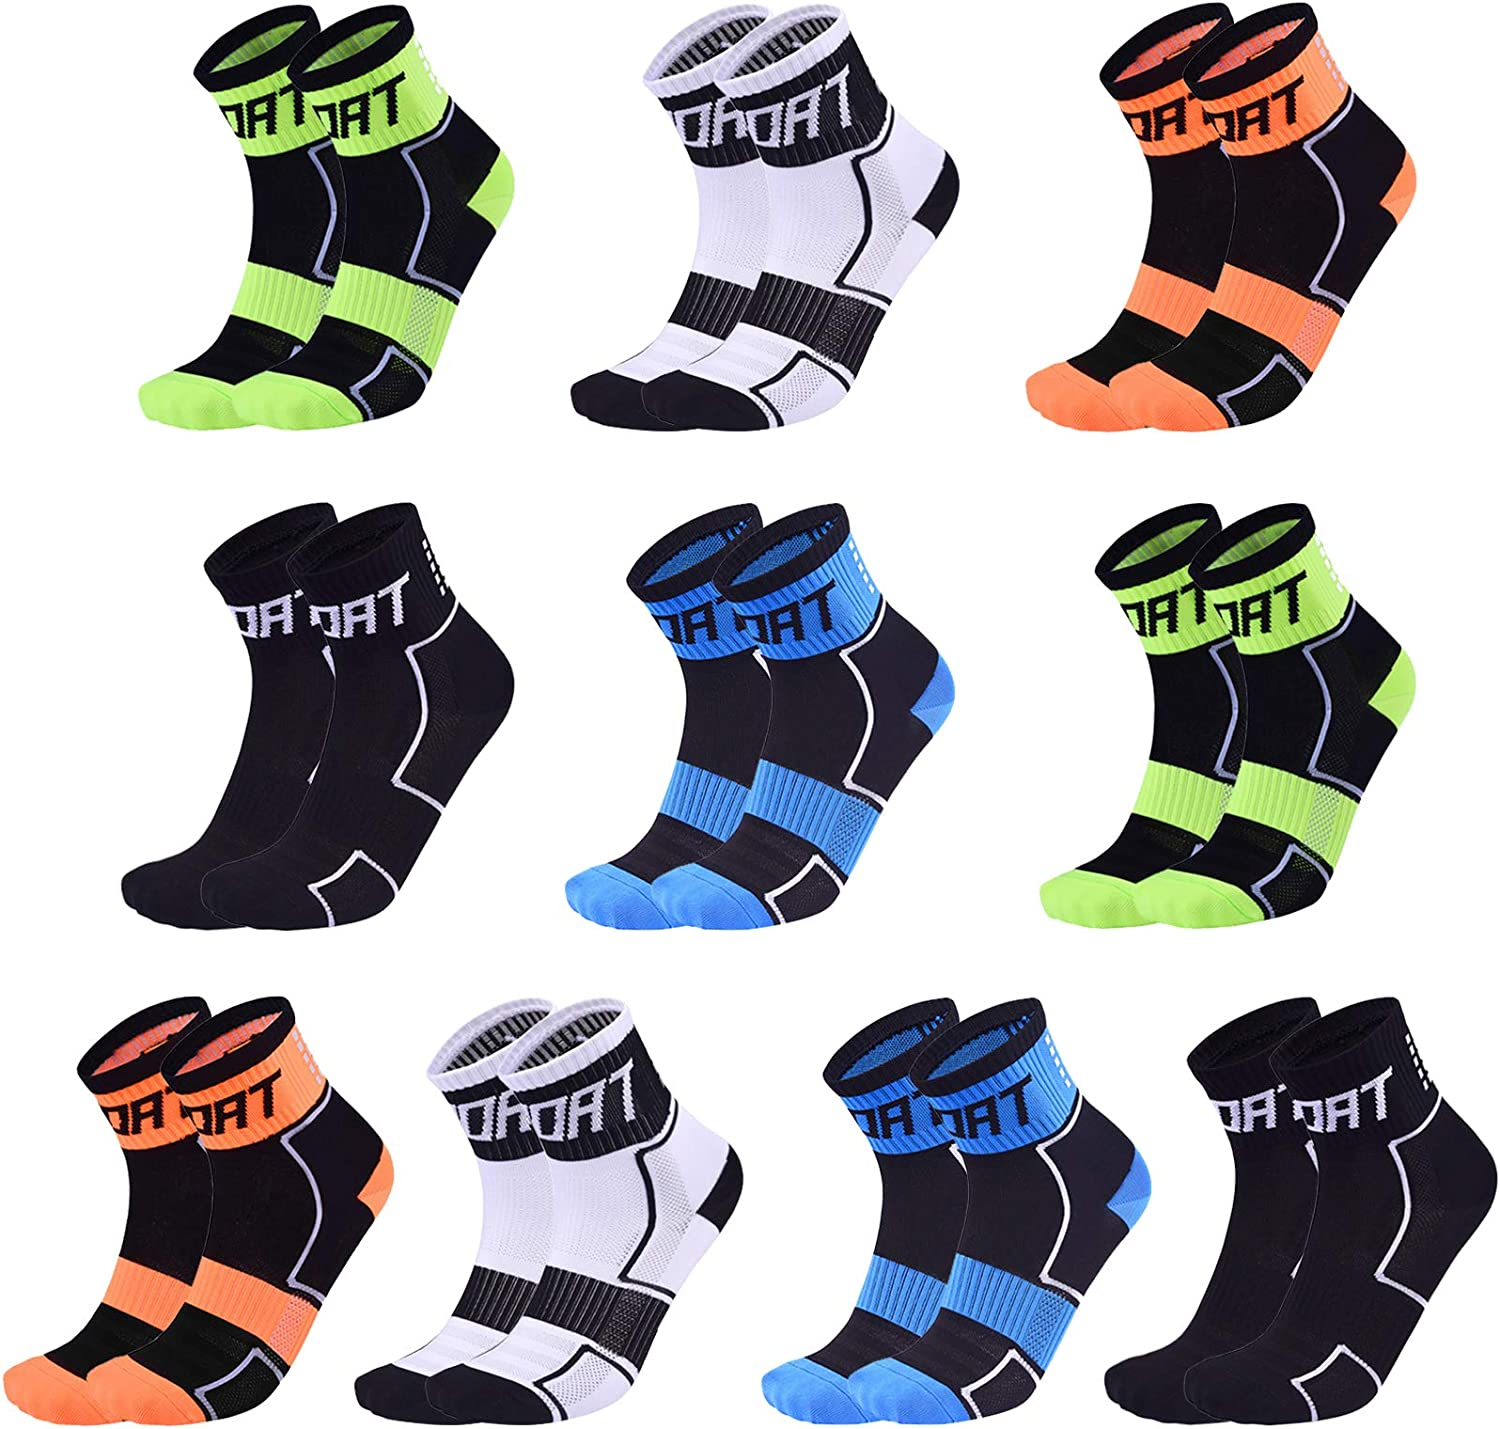 5 10Pack Sports Brand new Large special price !! Cycling Socks Smell Colorful Ankle Anti Running